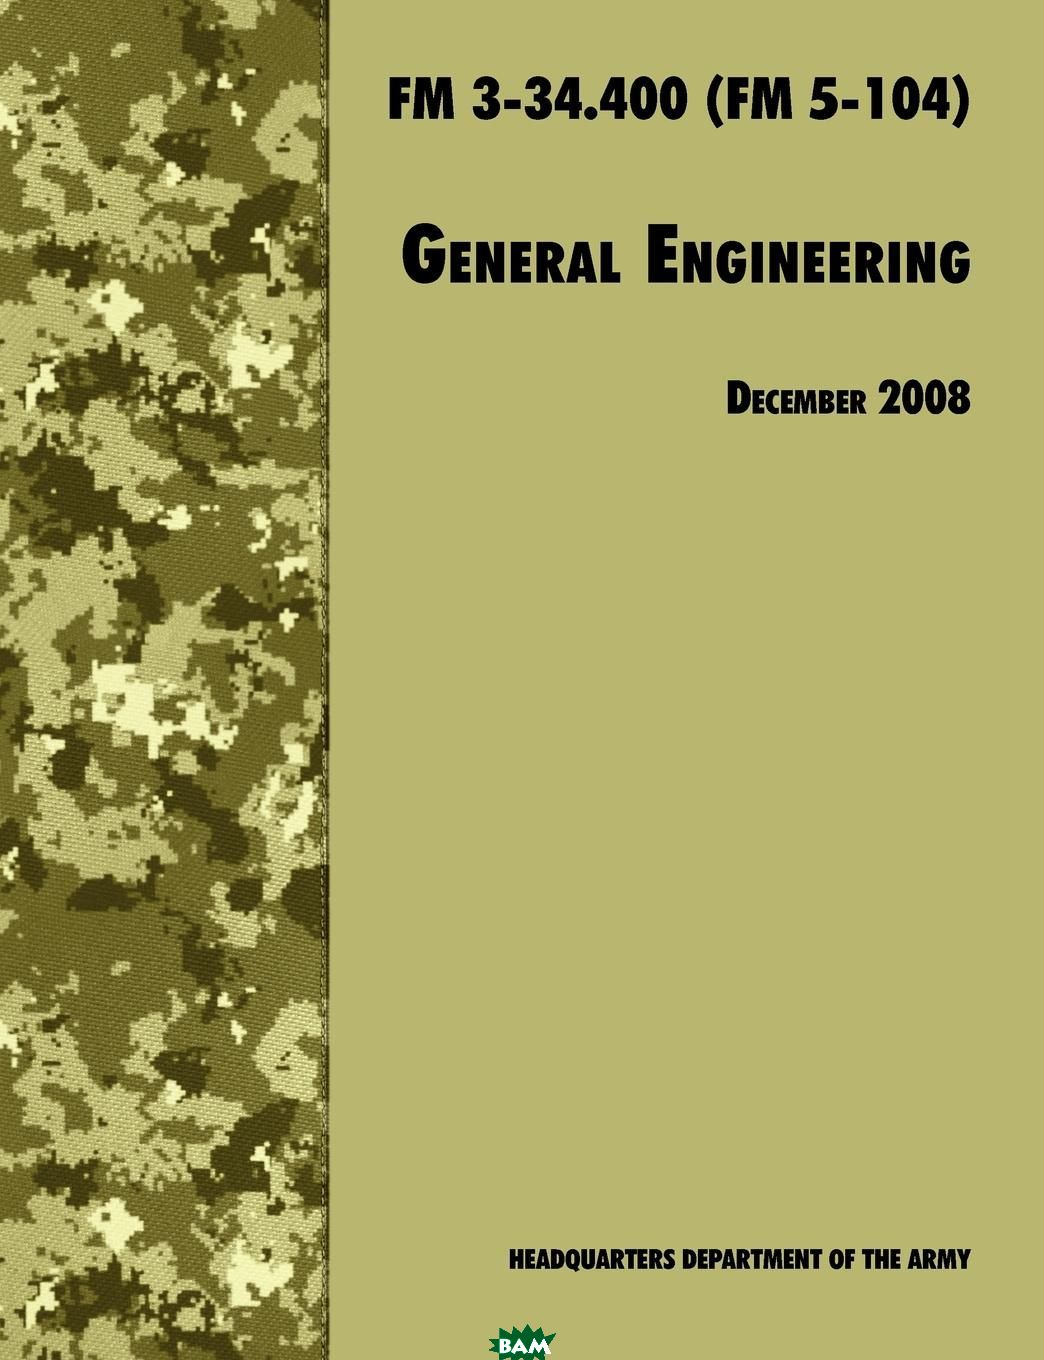 Купить General Engineering. The Official U.S. Army Field Manual FM 3-34.400 (FM 5-104), 2008 revision, U.S. Department of the Army, U.S. Army Engineer School, Training and Doctrine Command, 9781780391670